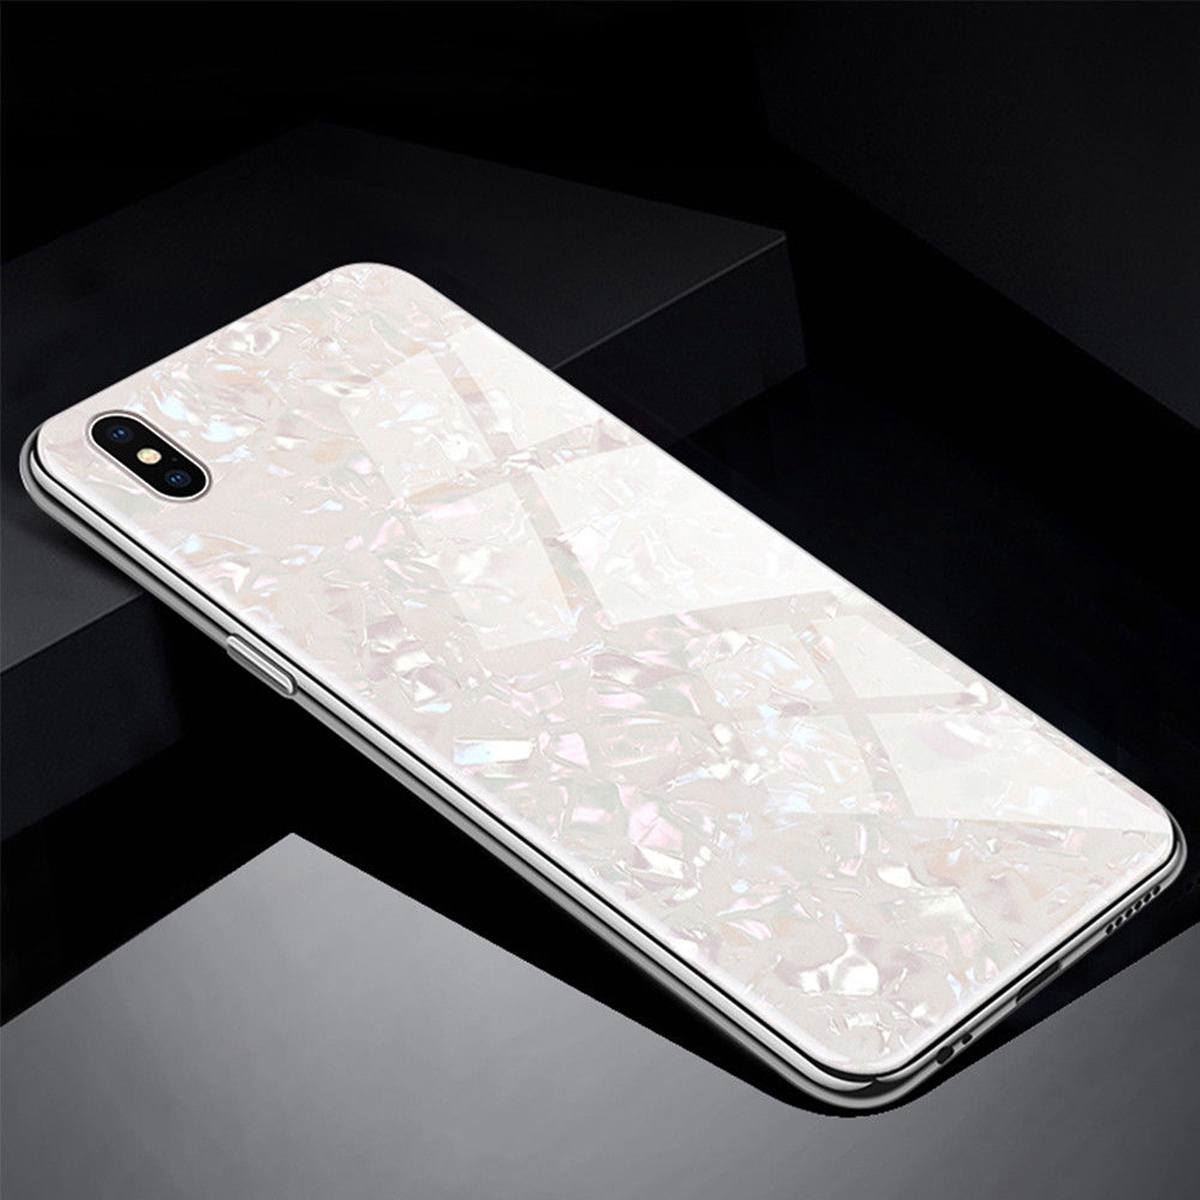 Luxury-Marble-Tempered-Glass-Case-Cover-For-Apple-iPhone-X-XS-XR-Max-10-8-7-6s-6 thumbnail 63